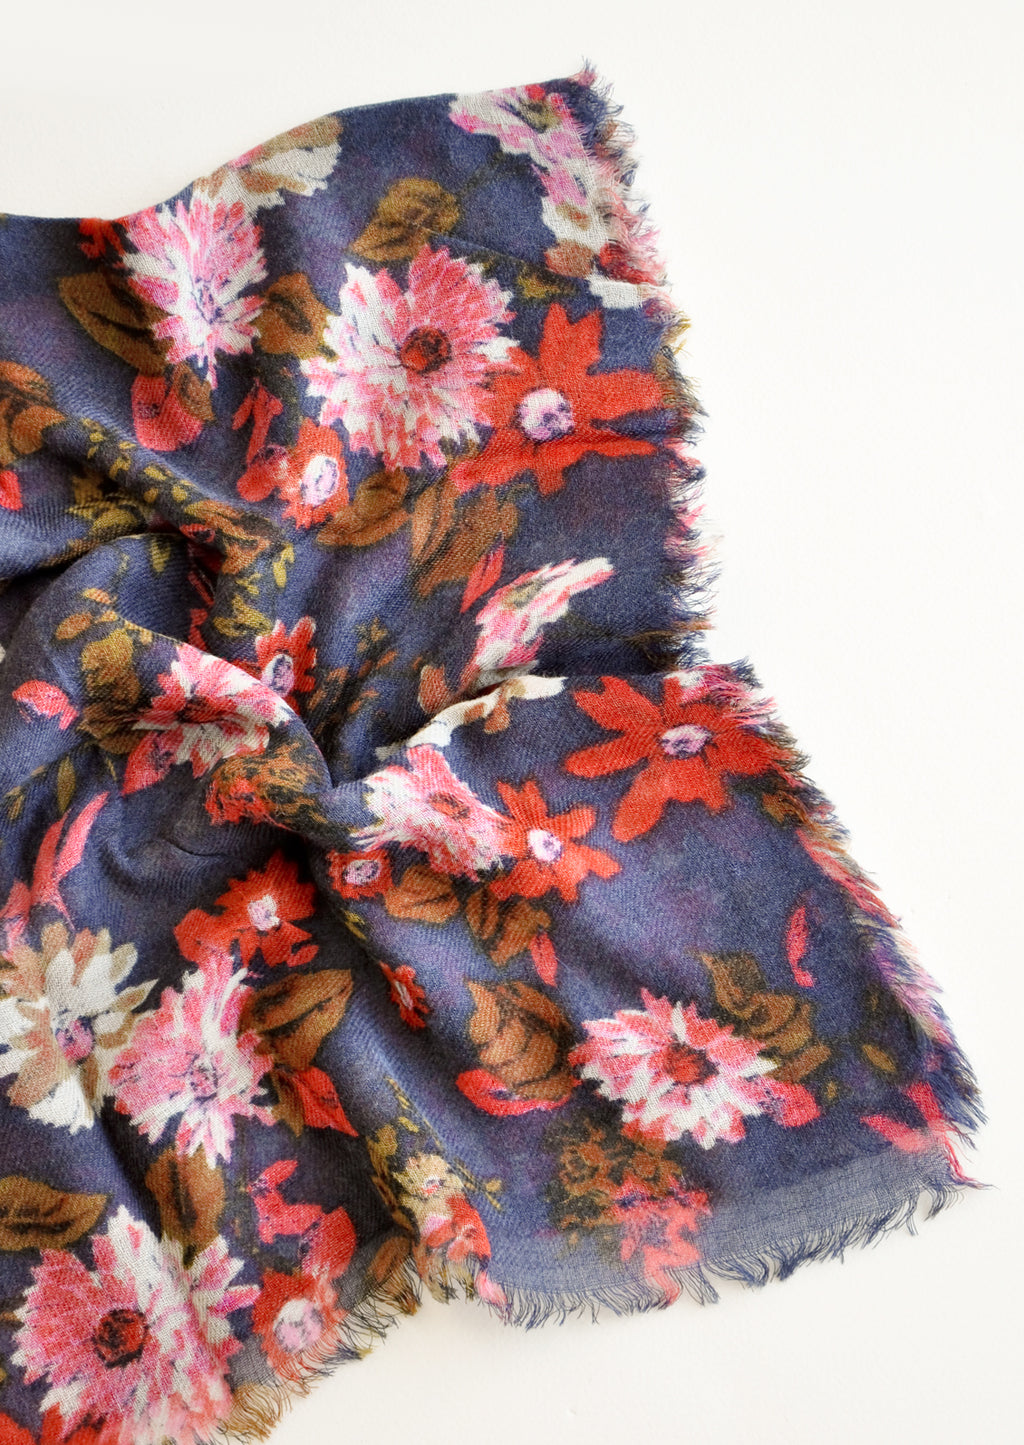 2: Close up shot of scarf with dark blue background and multi-colored pink and red floral pattern